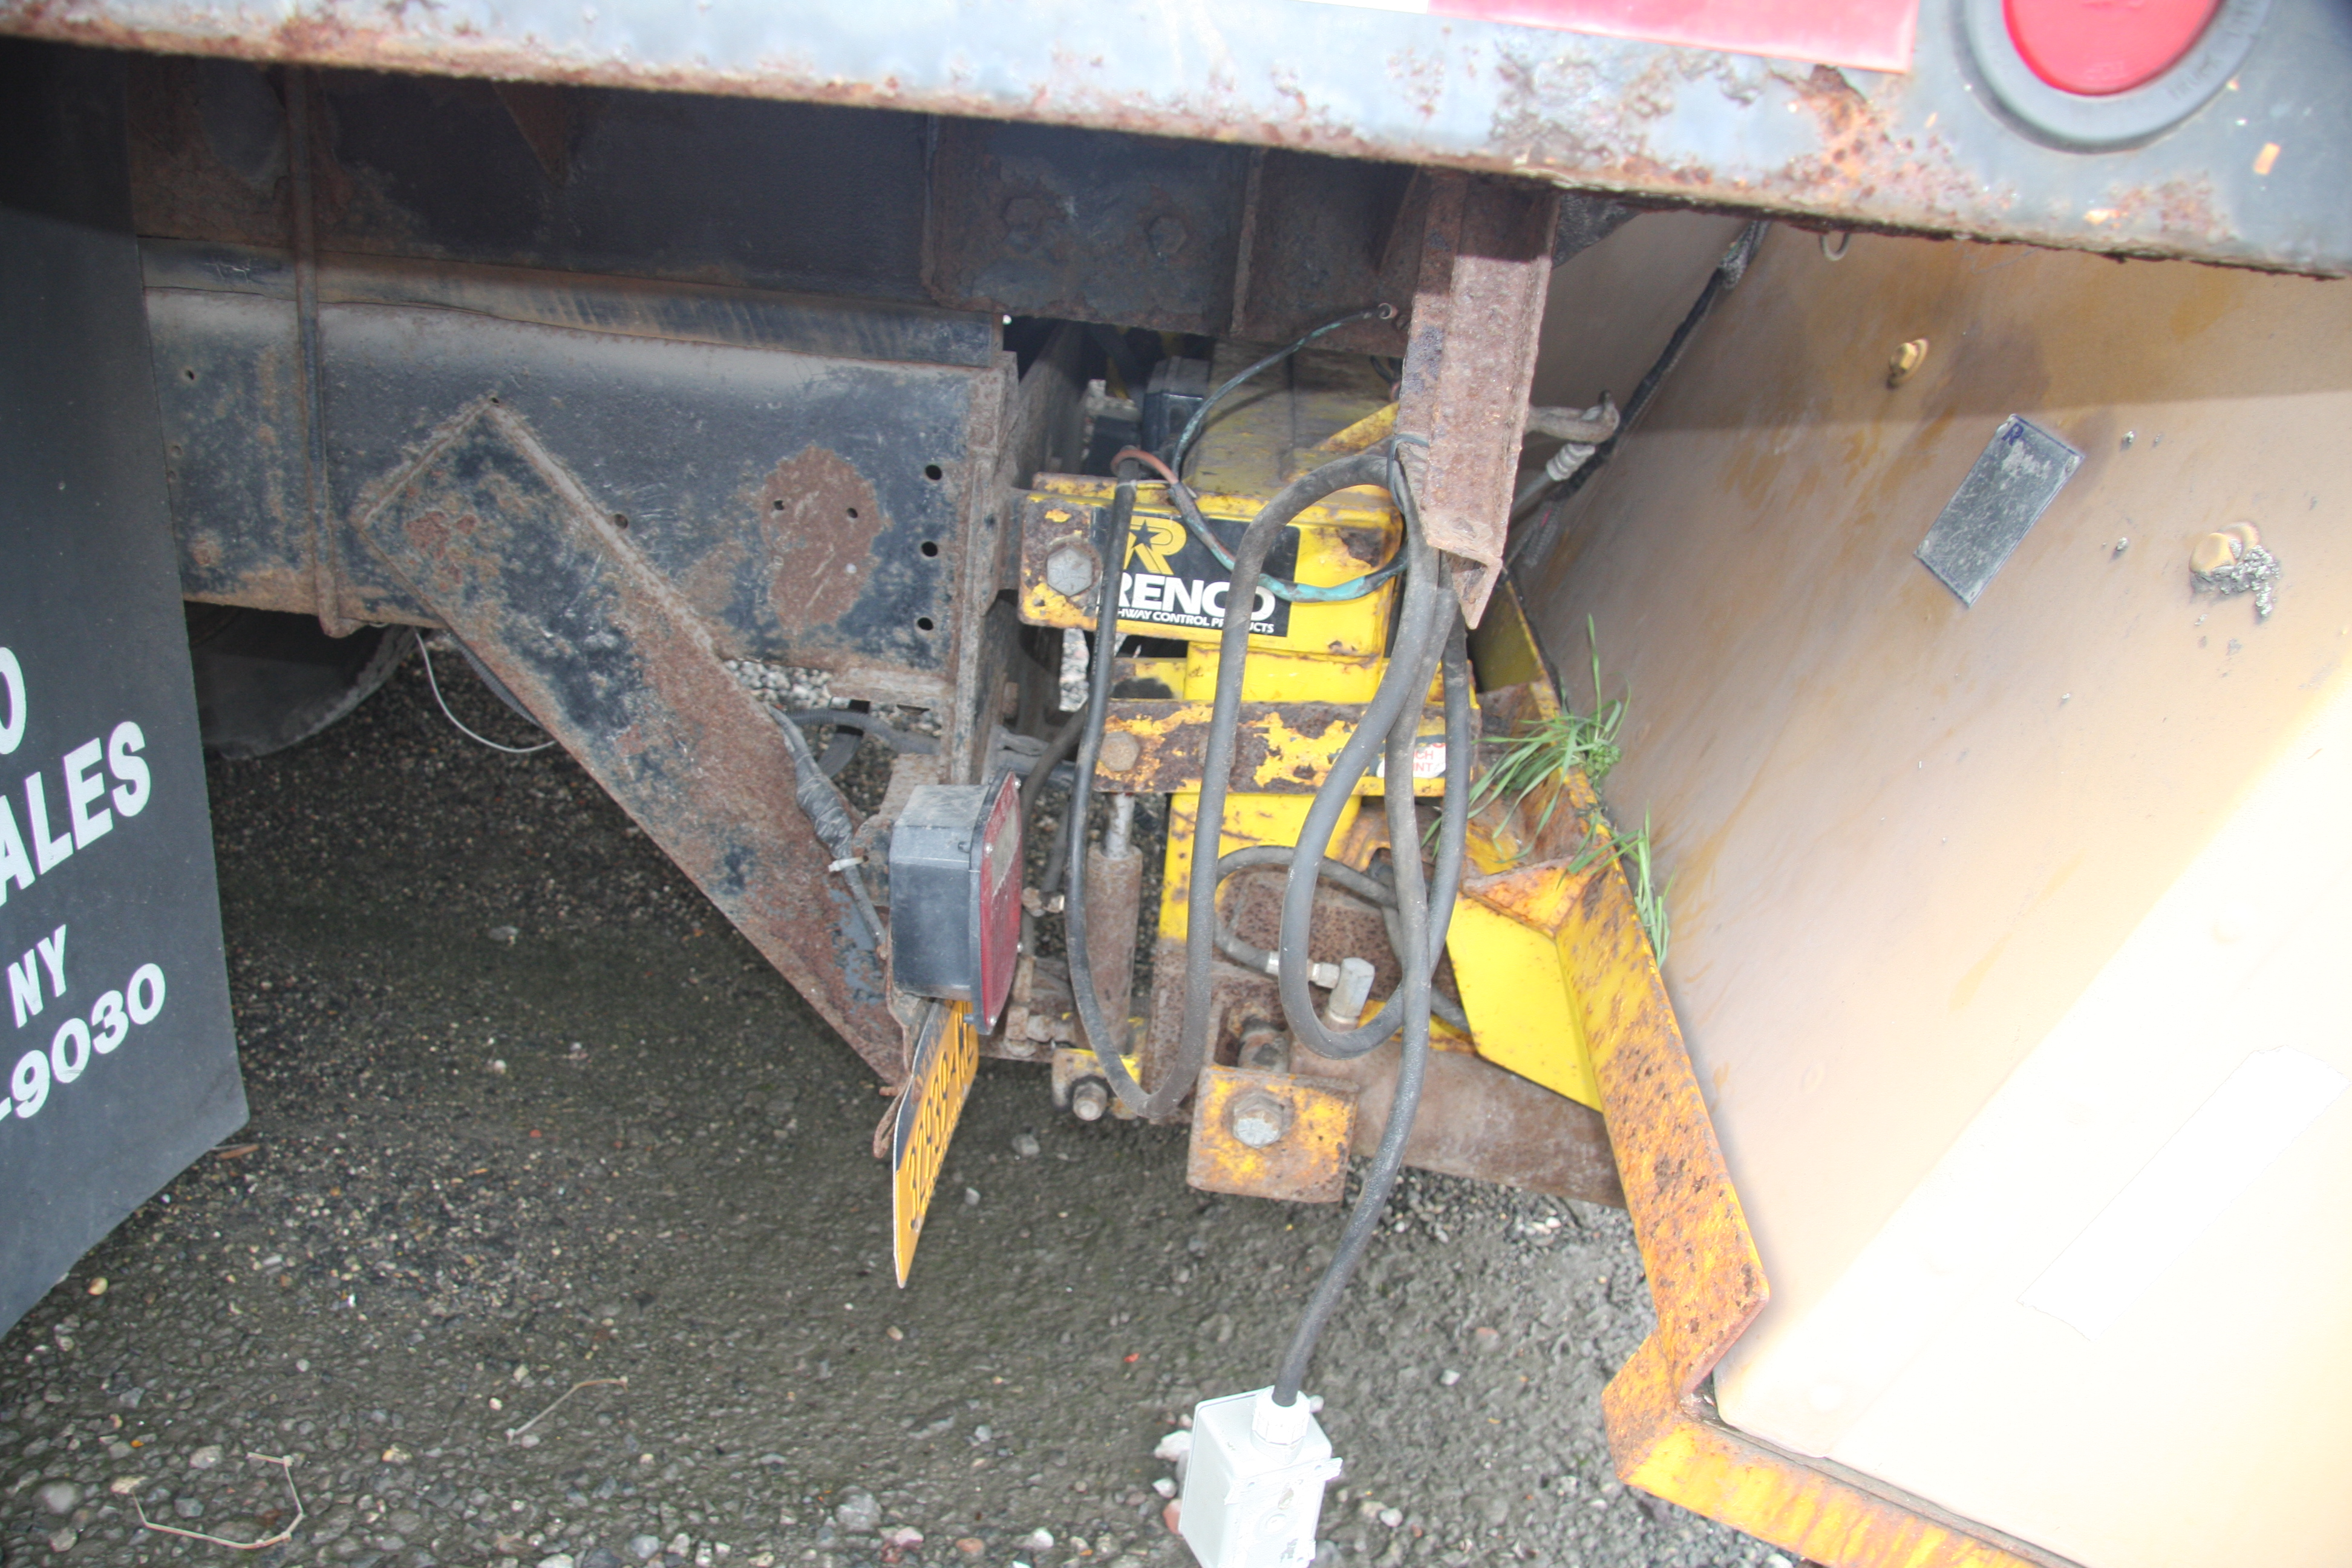 """Lot 24 - 1996 INTERNATIONAL 4700X2 ATTENUATOR TRUCK, 16' STEEL DECK, APPROXIMATELY 67,410 MILES, RENCO """"RAMCO"""